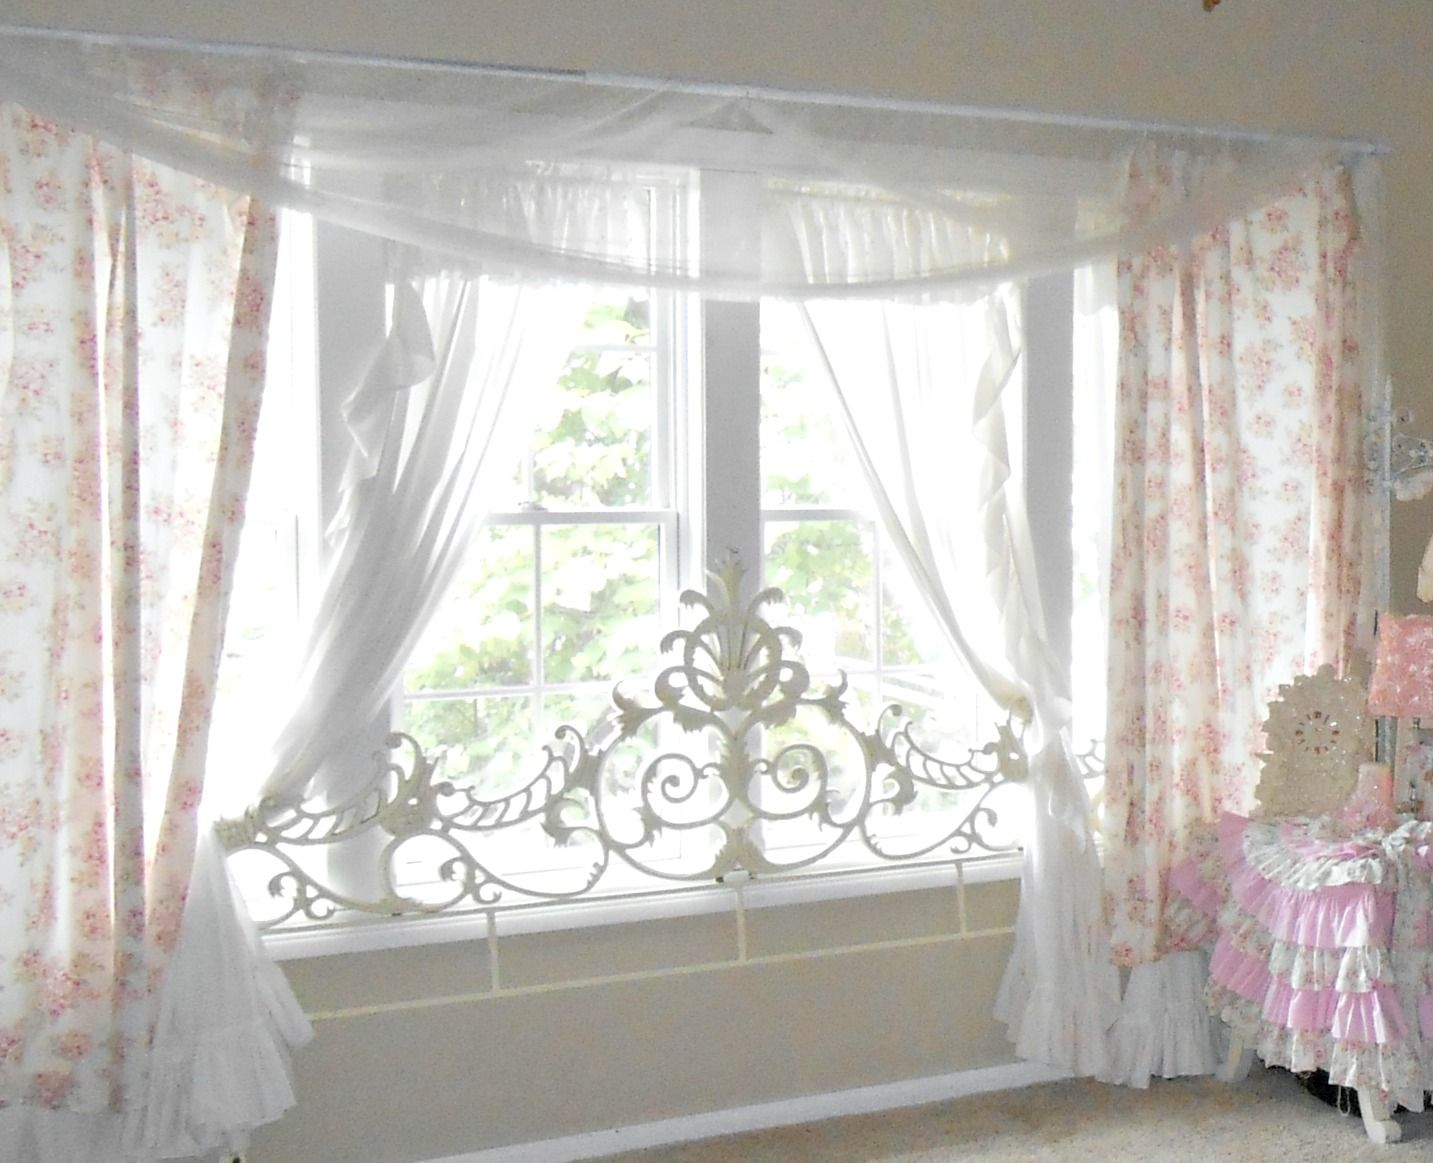 Simply Shabby Chic Sheets Shower Curtain Valance Curtains Designs Window Especially For The Smaller Living Room Size Ideas Of White